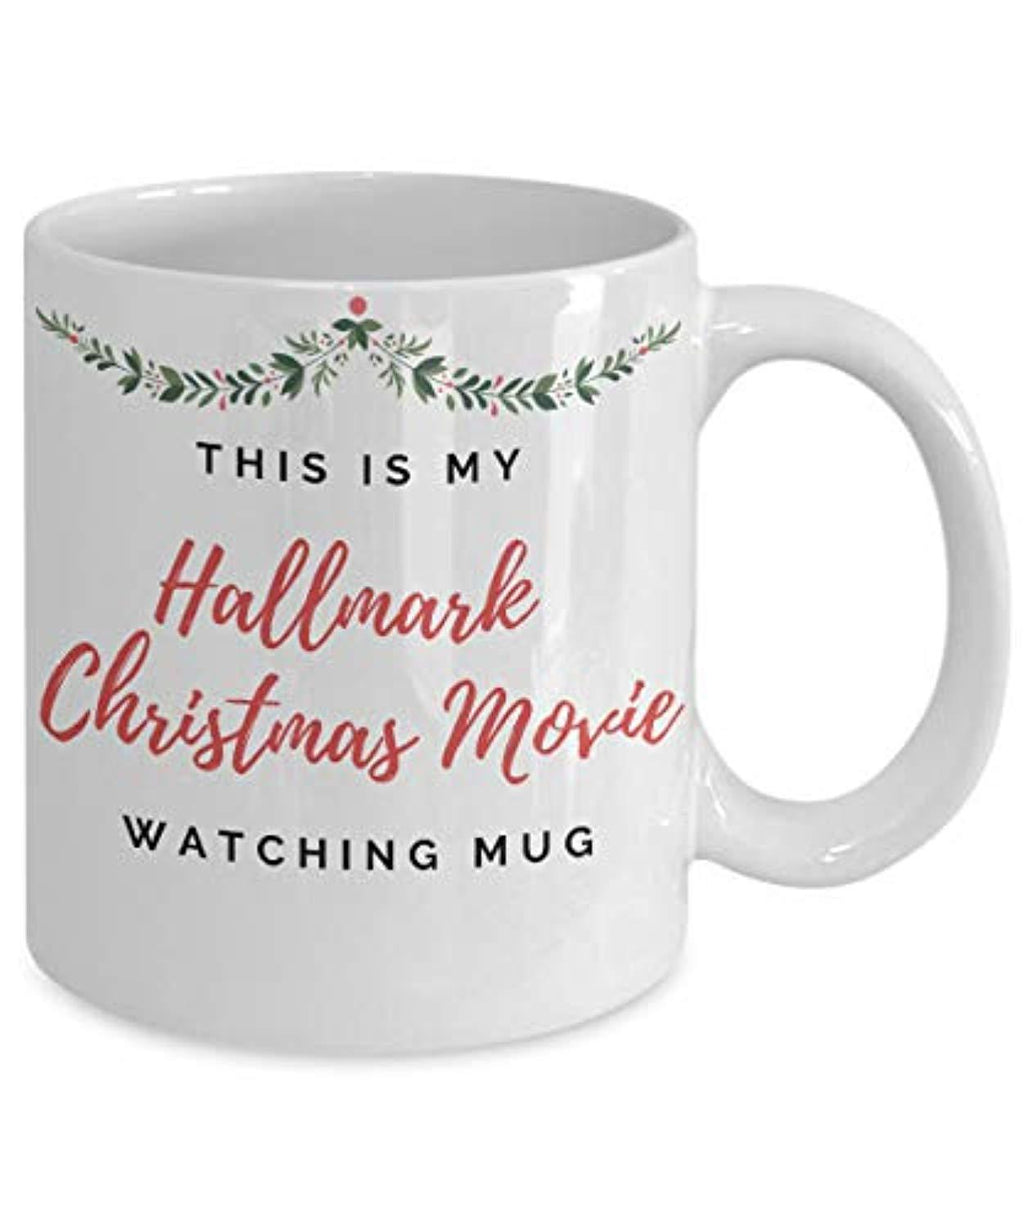 This Is My Hallmark Christmas Movie Coffee Mug